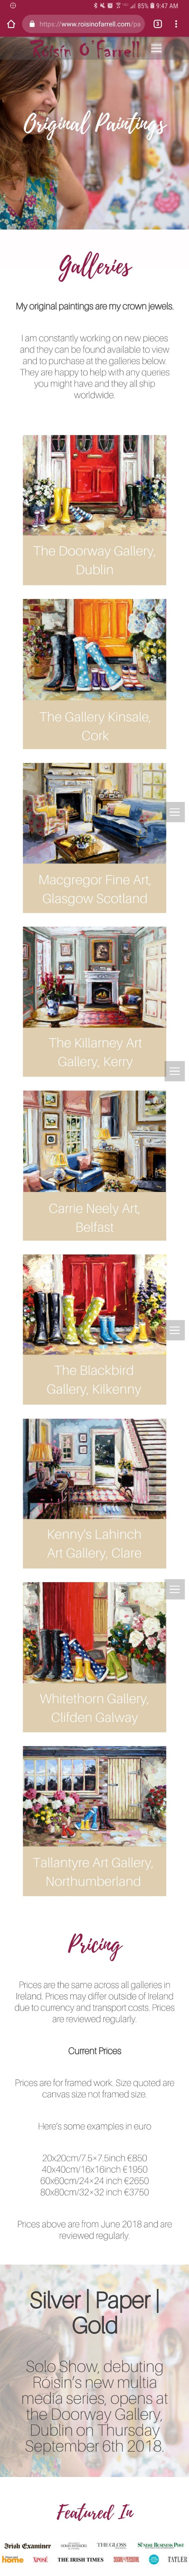 Kristen Leigh | WordPress Web Design Studio | Róisín O'Farrell Portfolio Piece | Original Paintings Page on Mobile